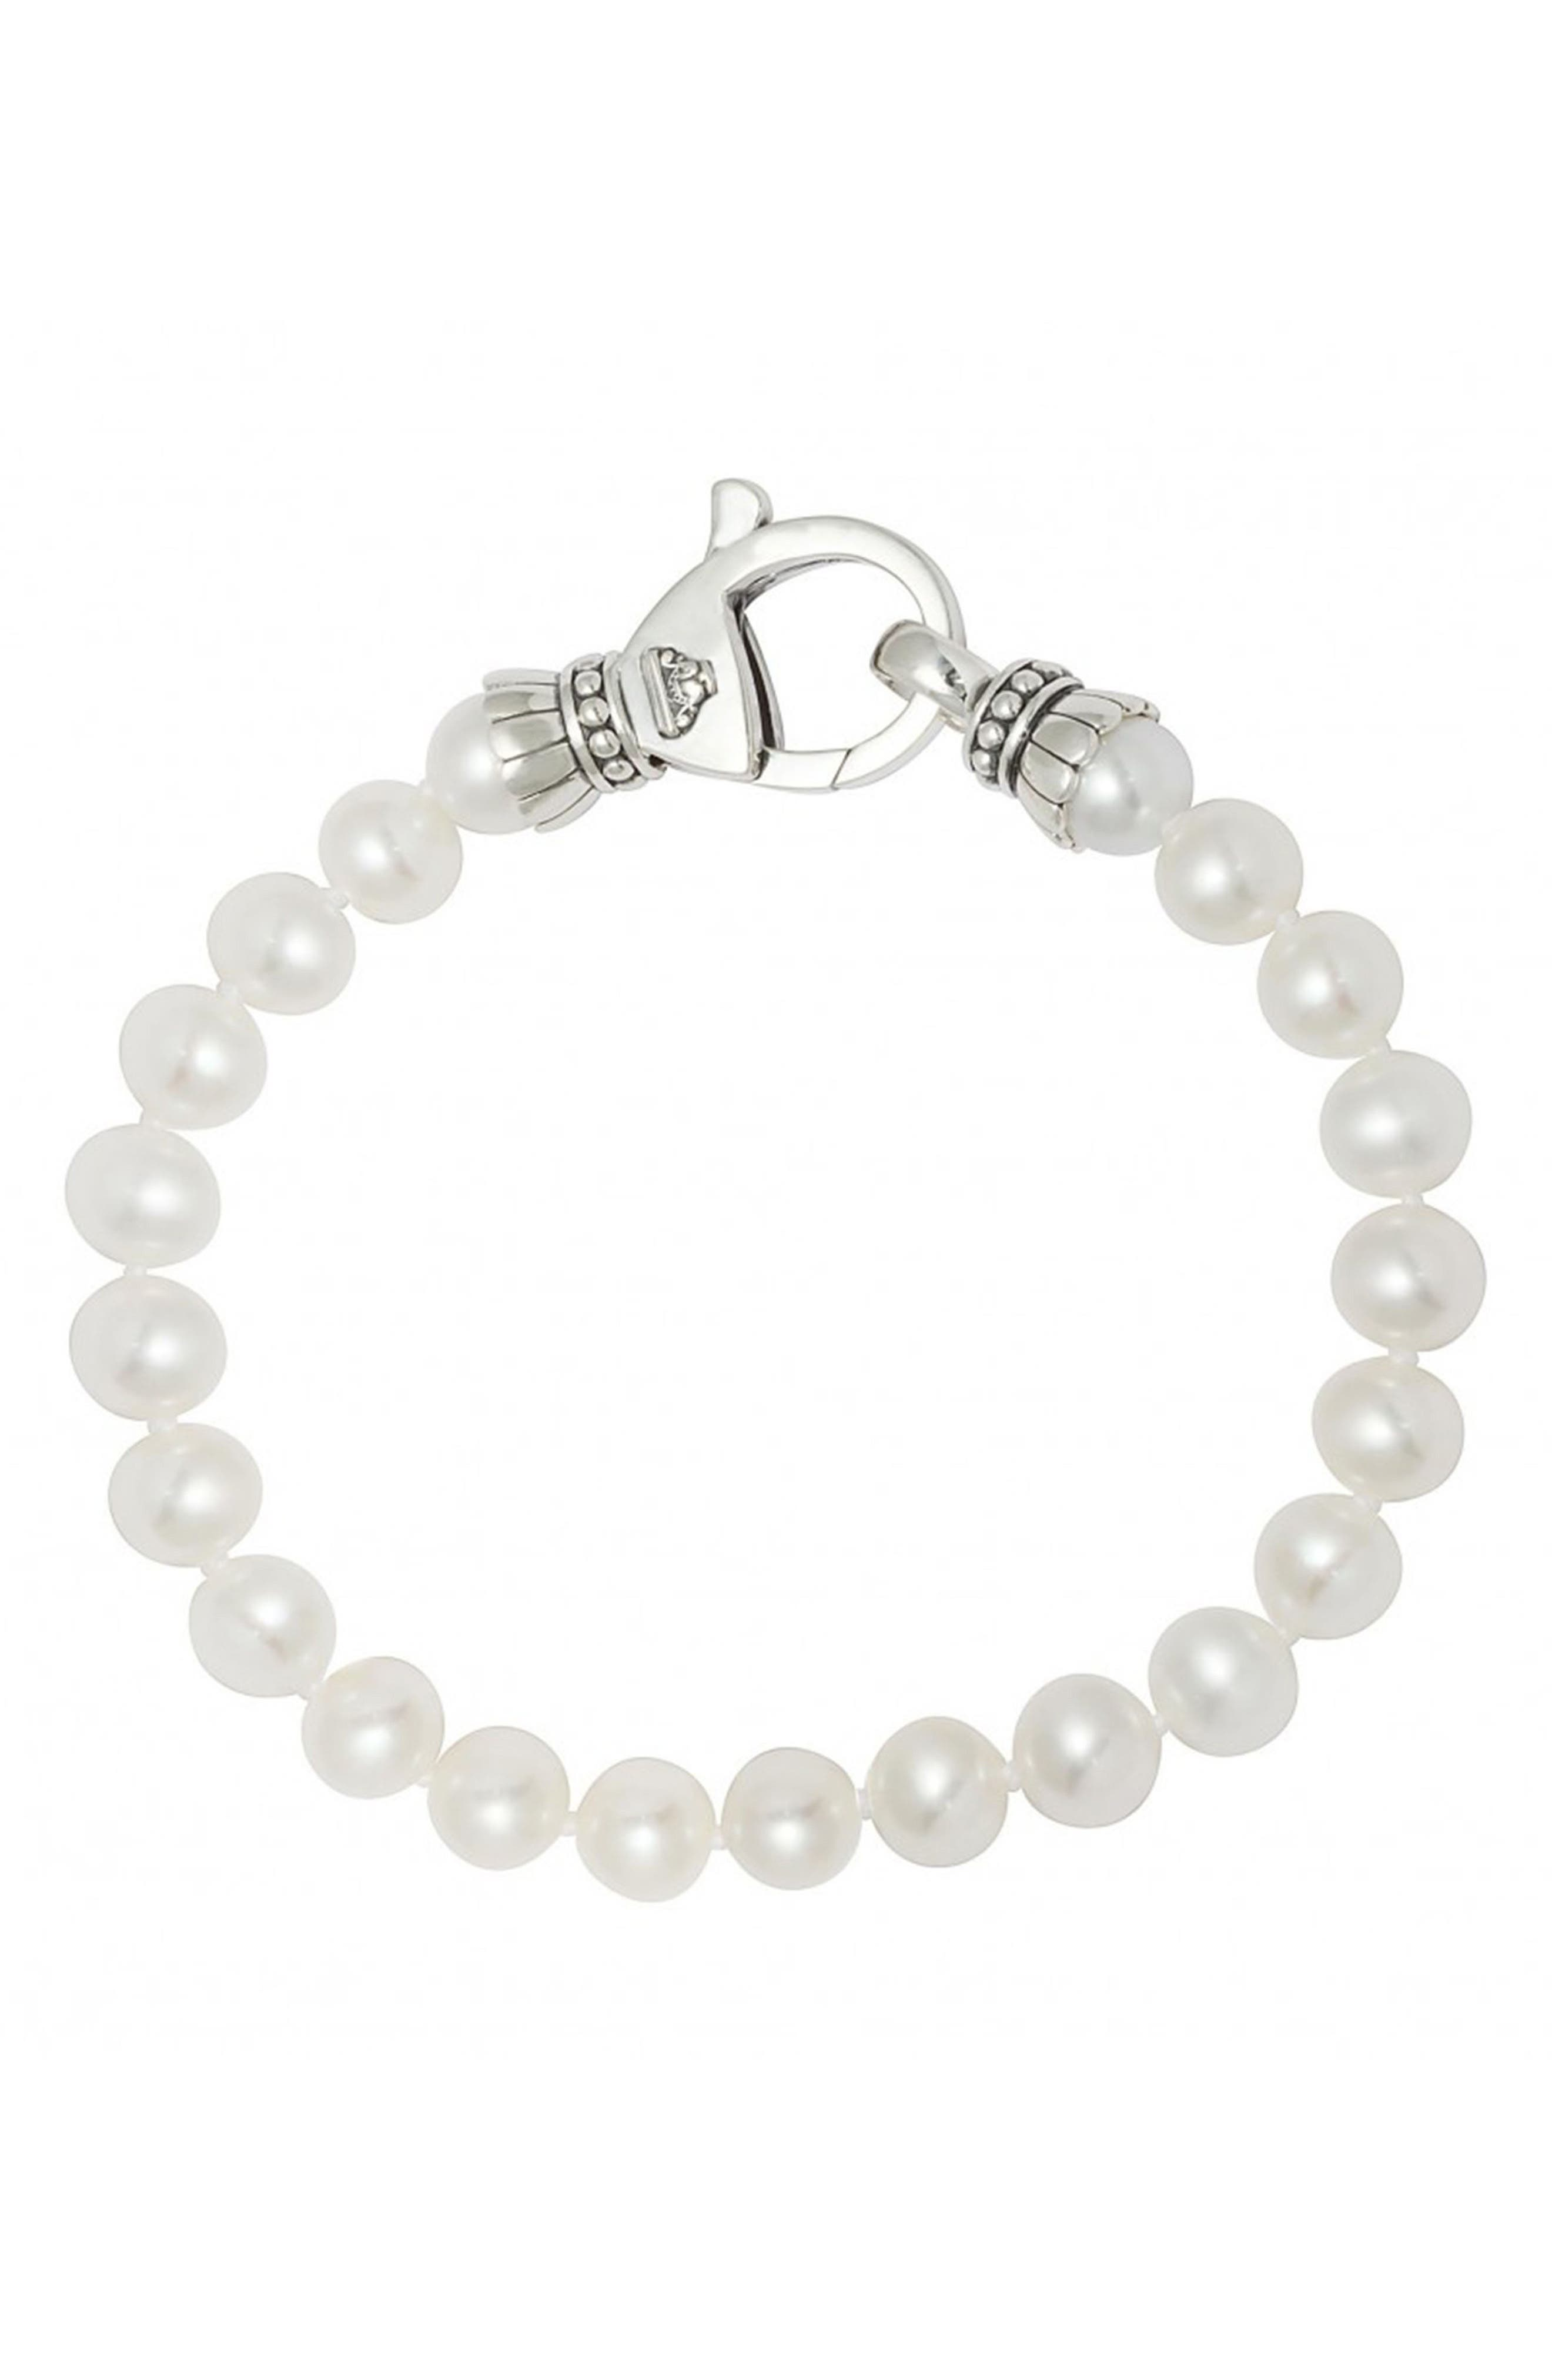 'Luna' 7.5mm Pearl Bracelet,                             Alternate thumbnail 2, color,                             SILVER/ PEARL